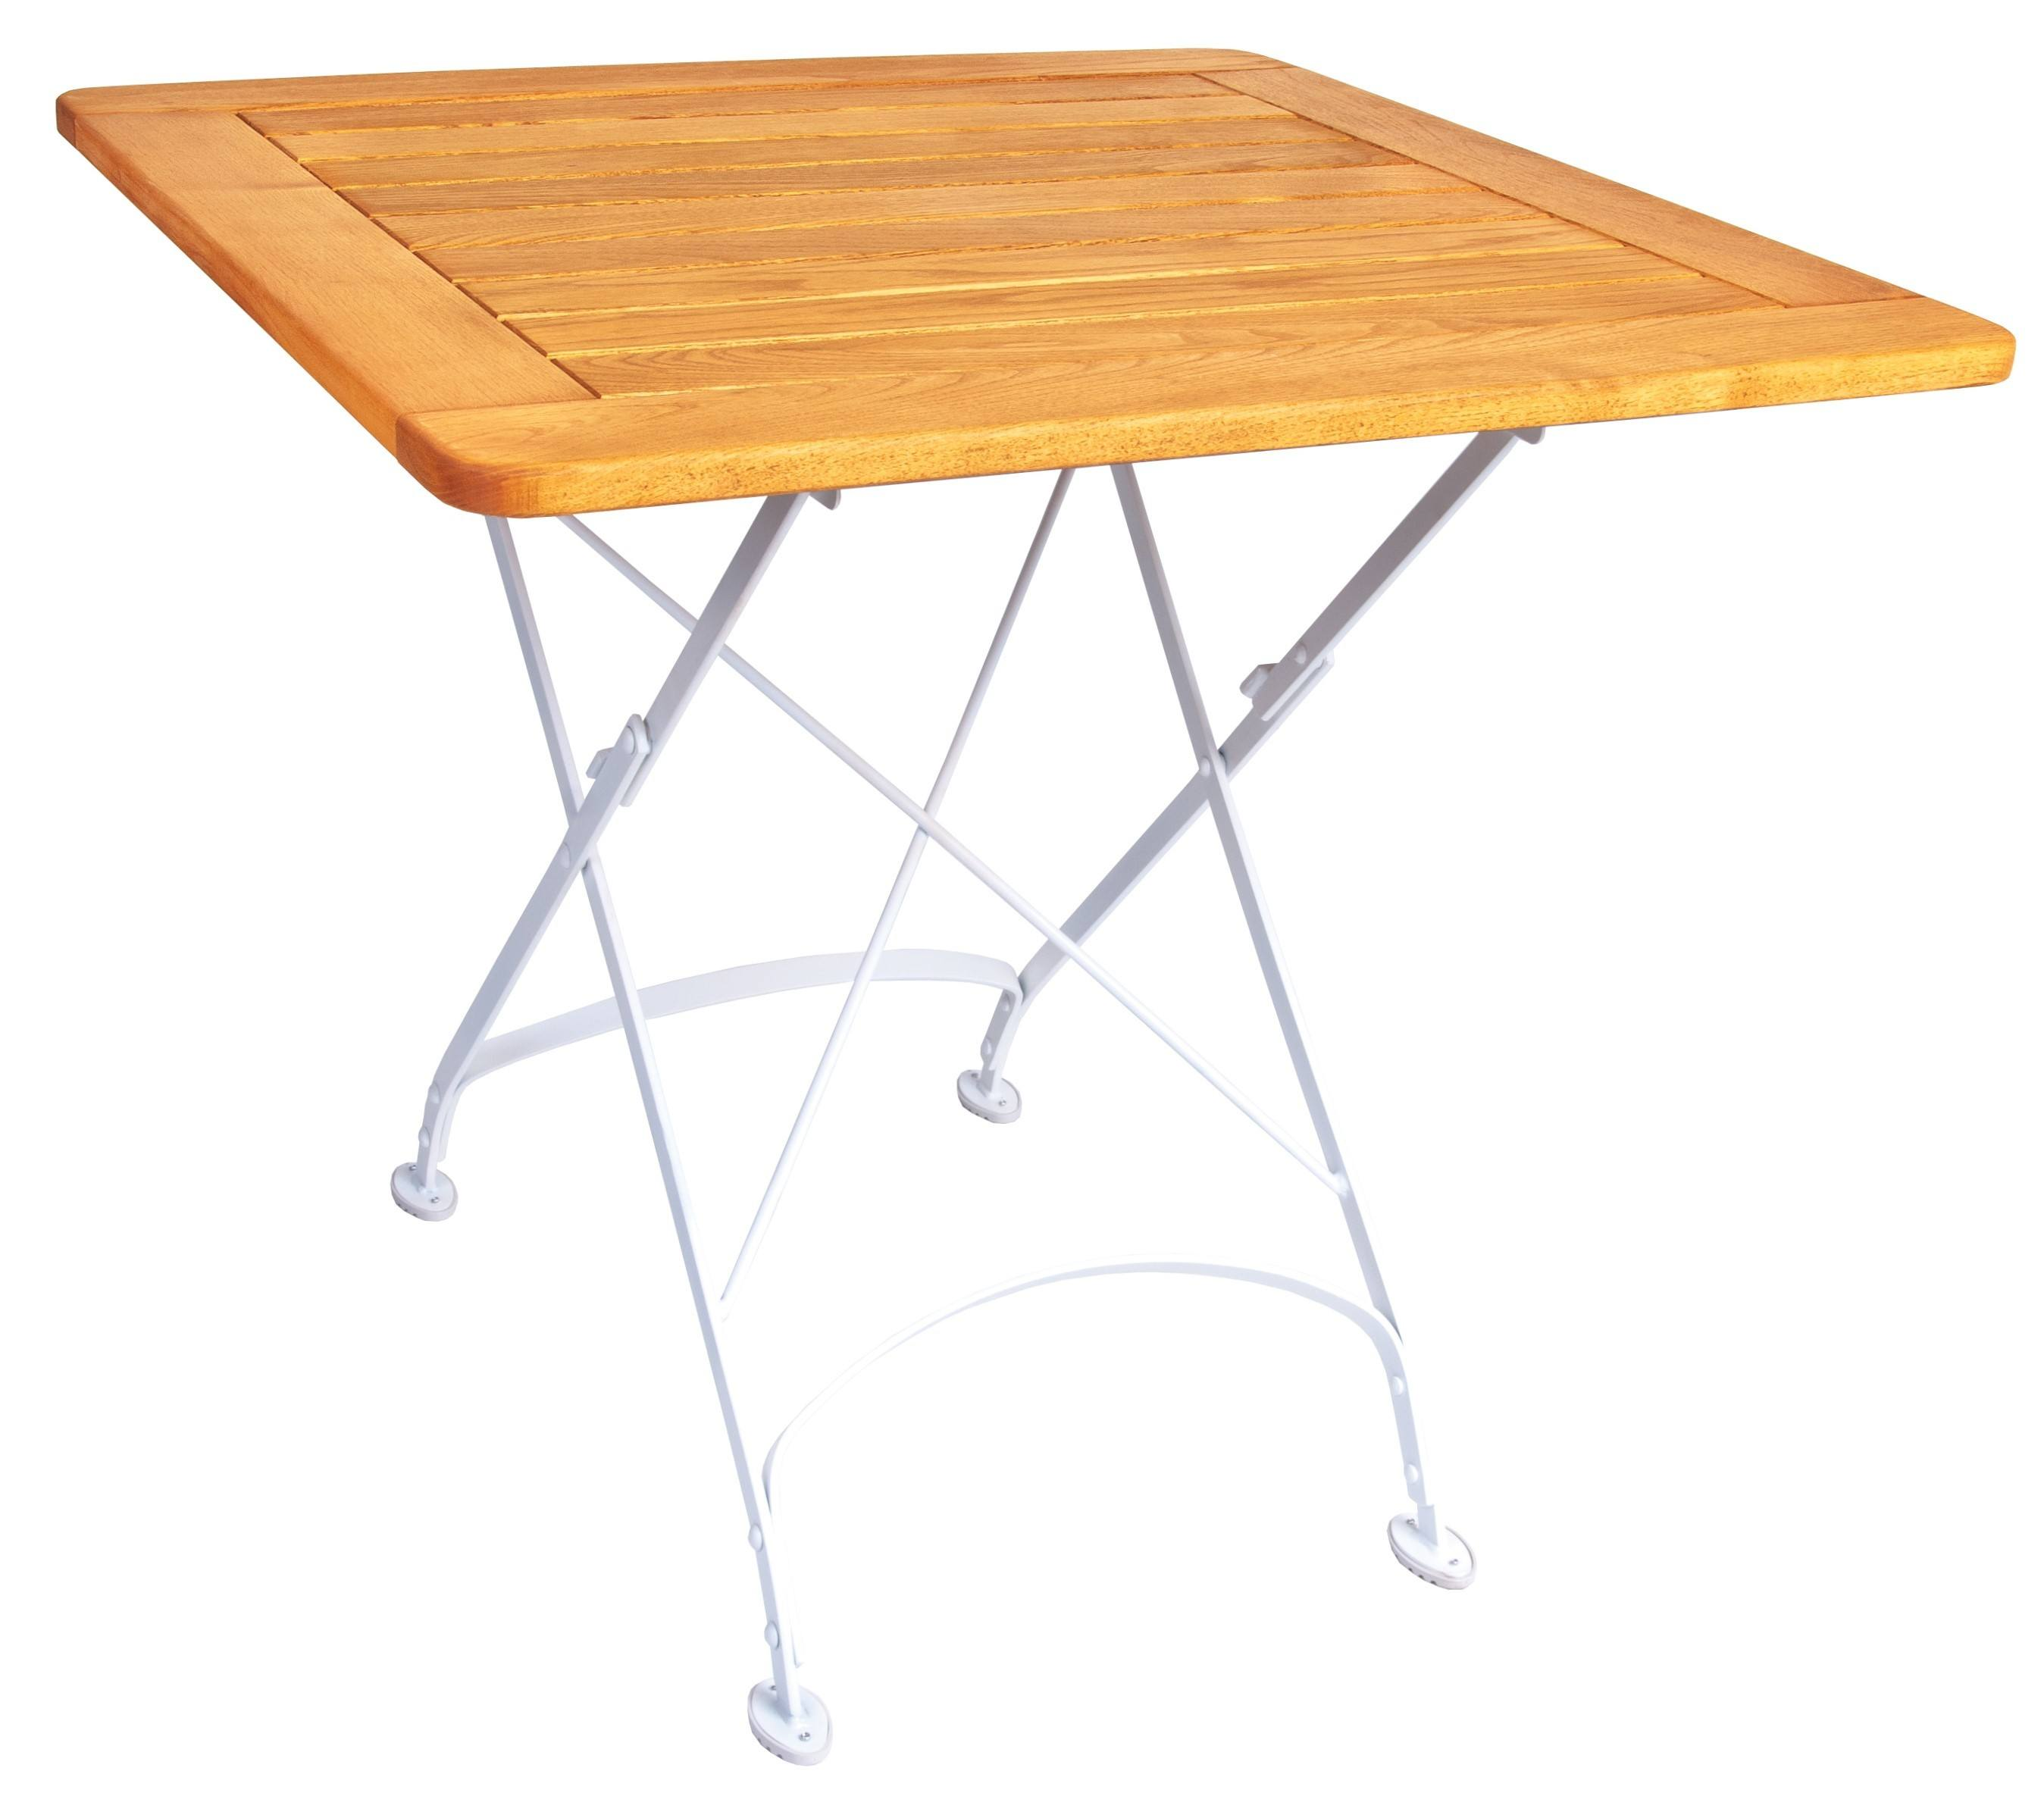 <p>Outdoor Furniture – Metal & Wooden Dining Collection – Creta Framed Table.</p> <p> </p> <p>Creta Furniture framed table with honey coloured hardwood tabletop with gently curved metal shaped frame.</p> <p> </p> <p>Ideally suited for either indoor or outdoor relaxed dining location in pubs or restaurants or more intimate café bistro al fresco area or for events requiring easy to fold and store furniture</p>